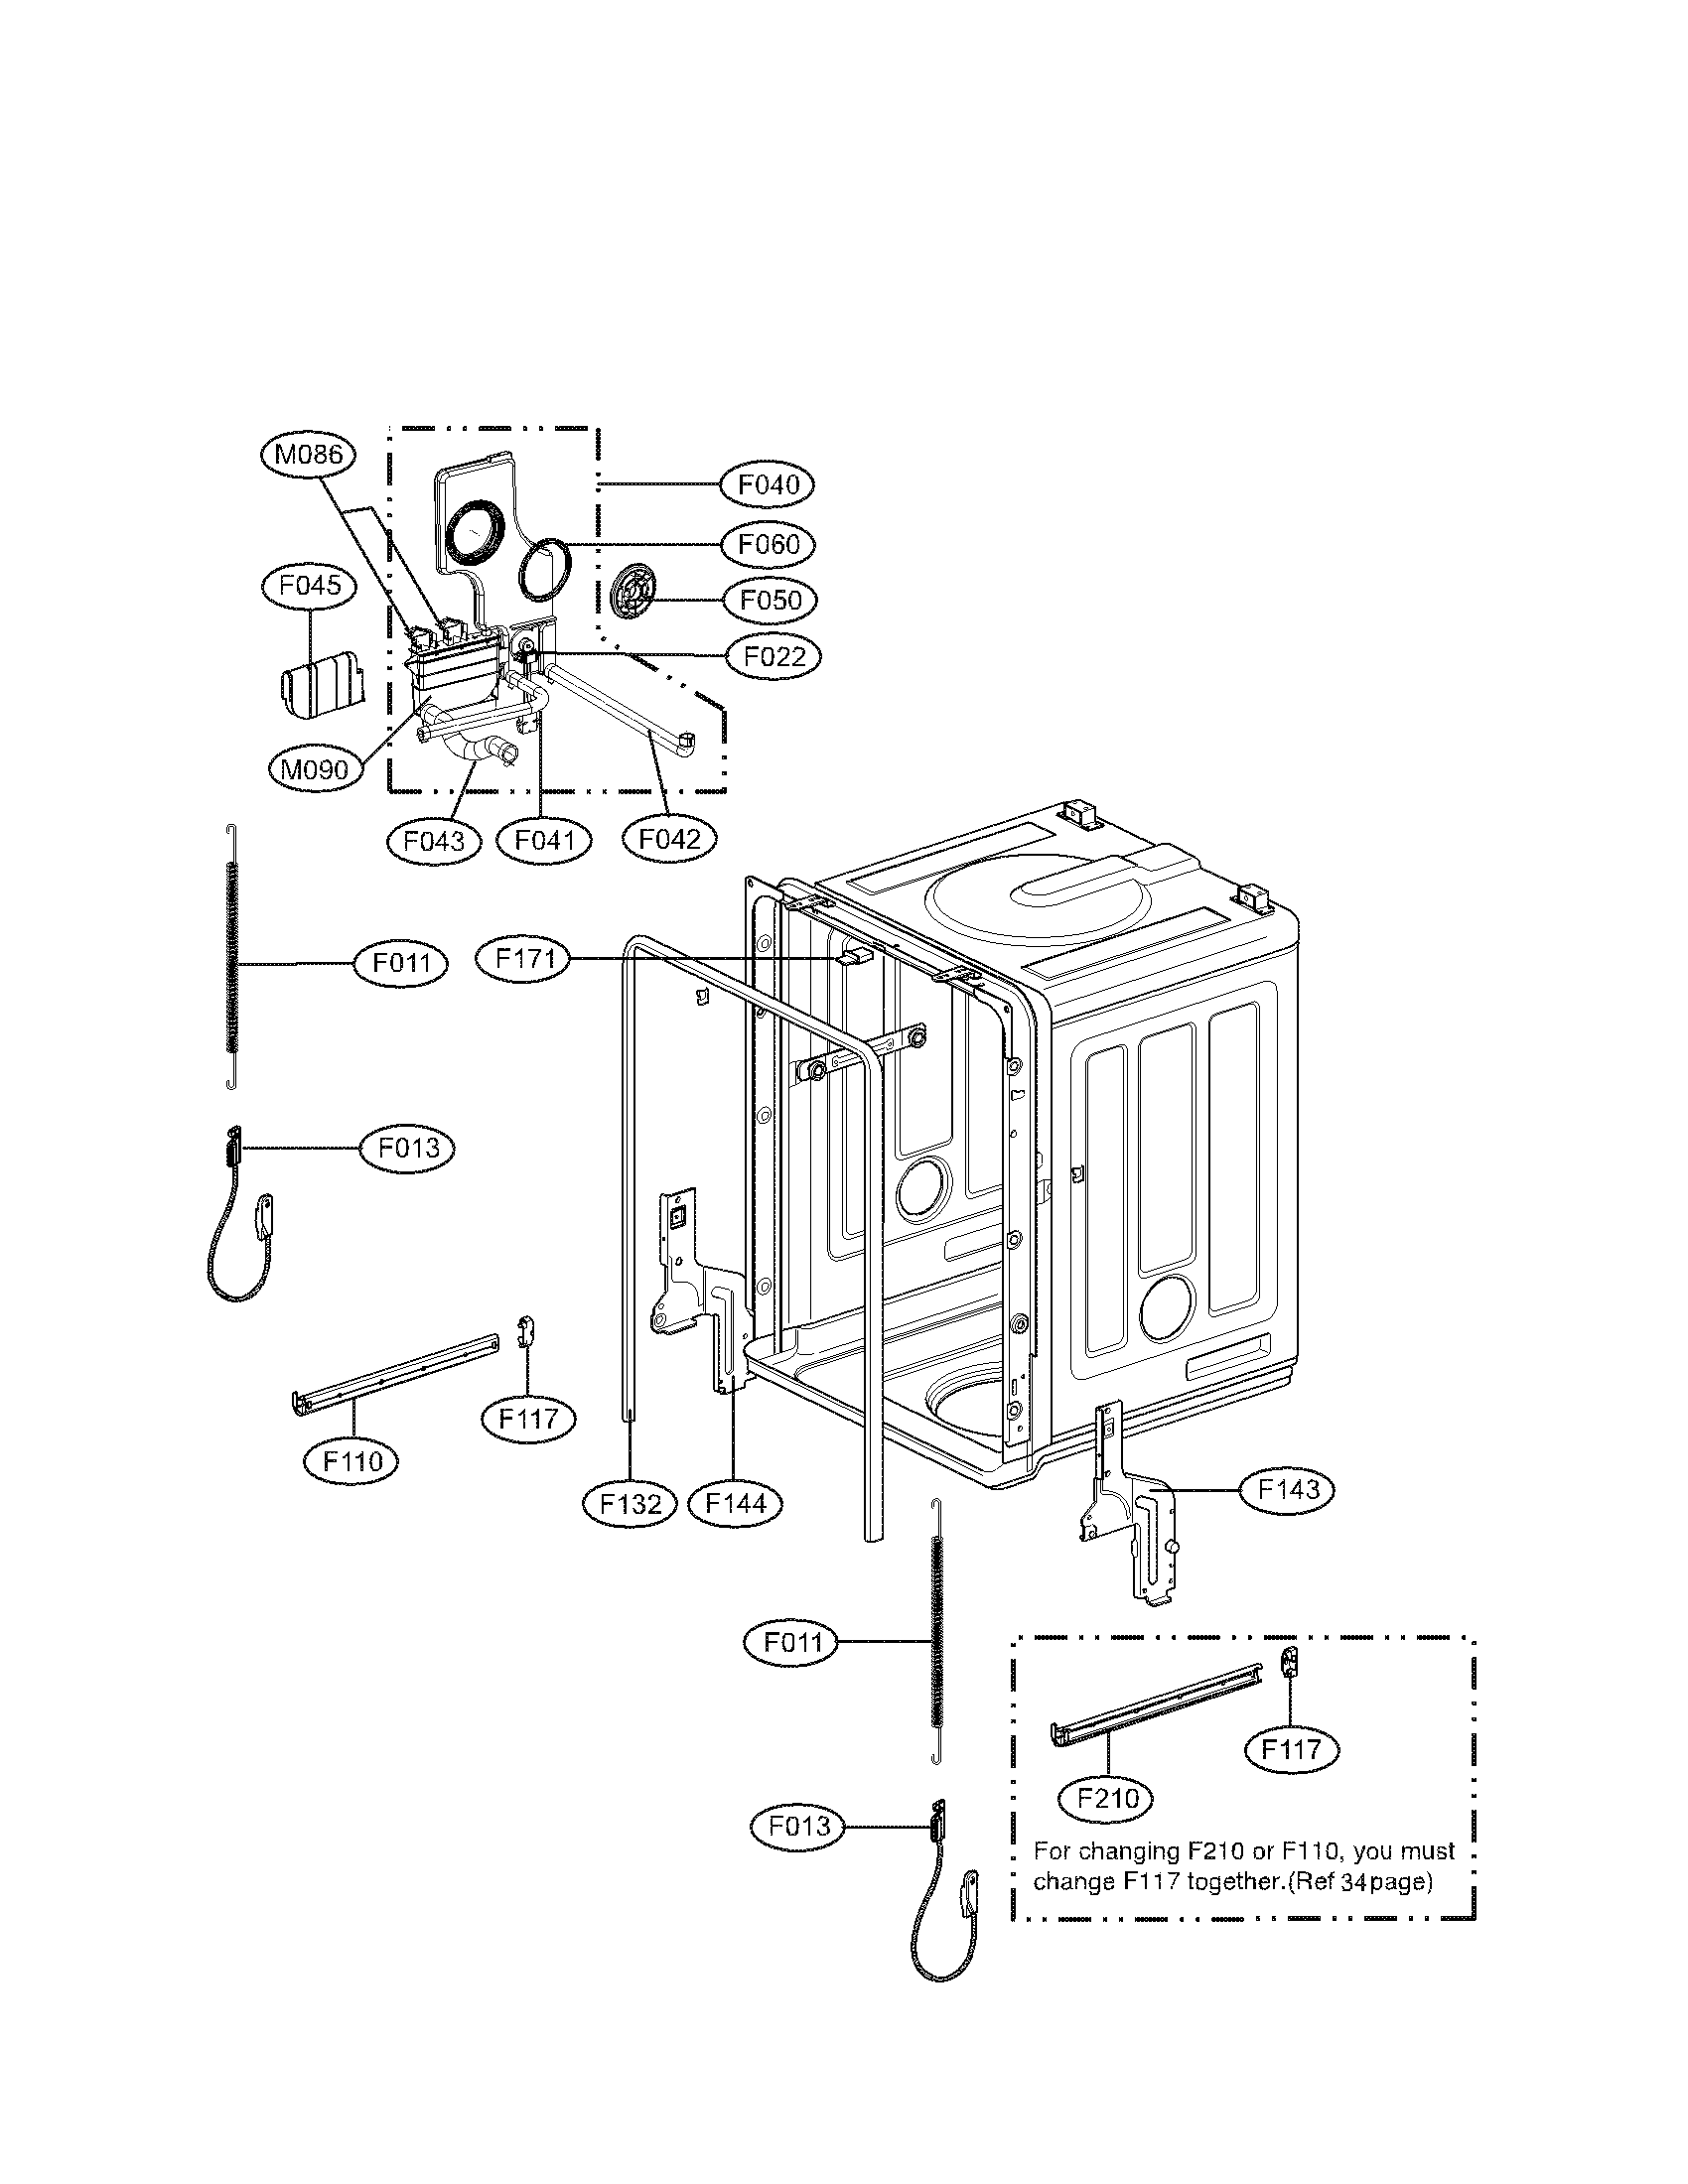 Guide Assembly for LG LDS5811WW Dishwasher